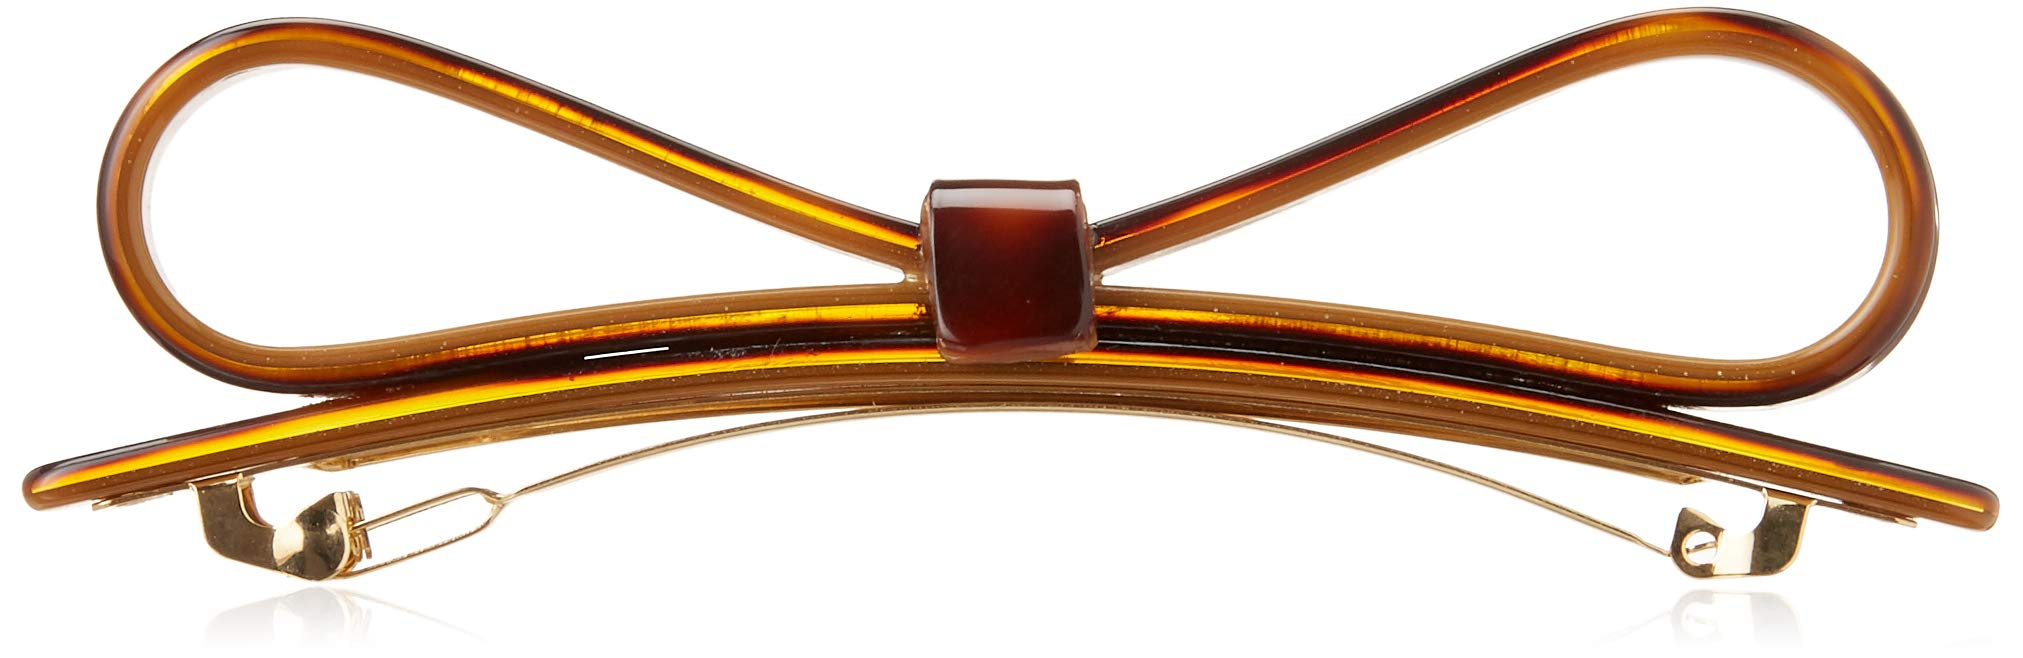 France Luxe Refined Bow Long and Skinny Barrette - Tokyo/Gold